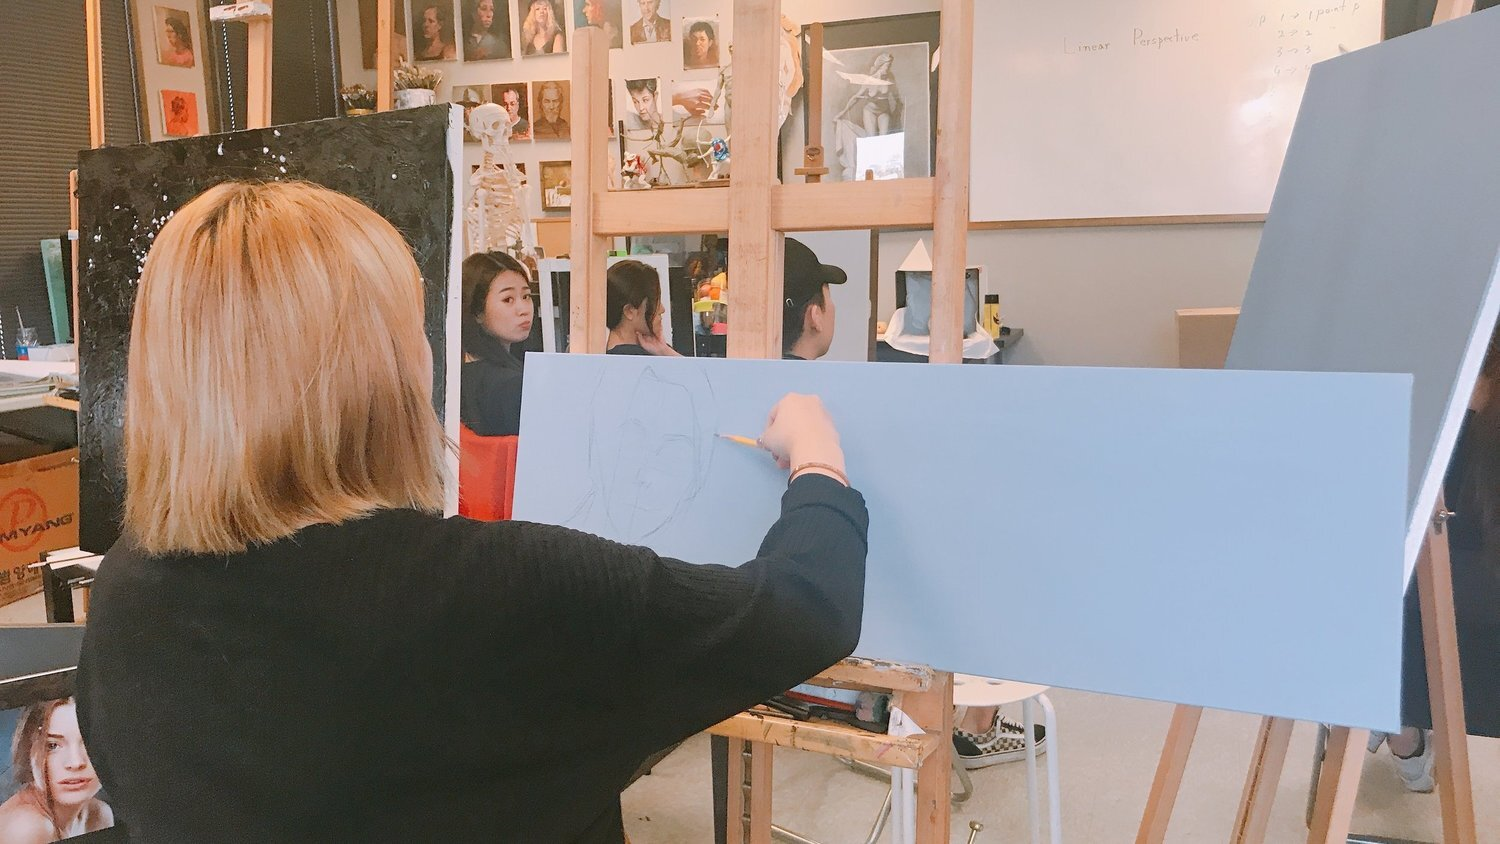 DRAWING/PAINTING CLASS - Students will learn the traditional techniques on drawing and painting